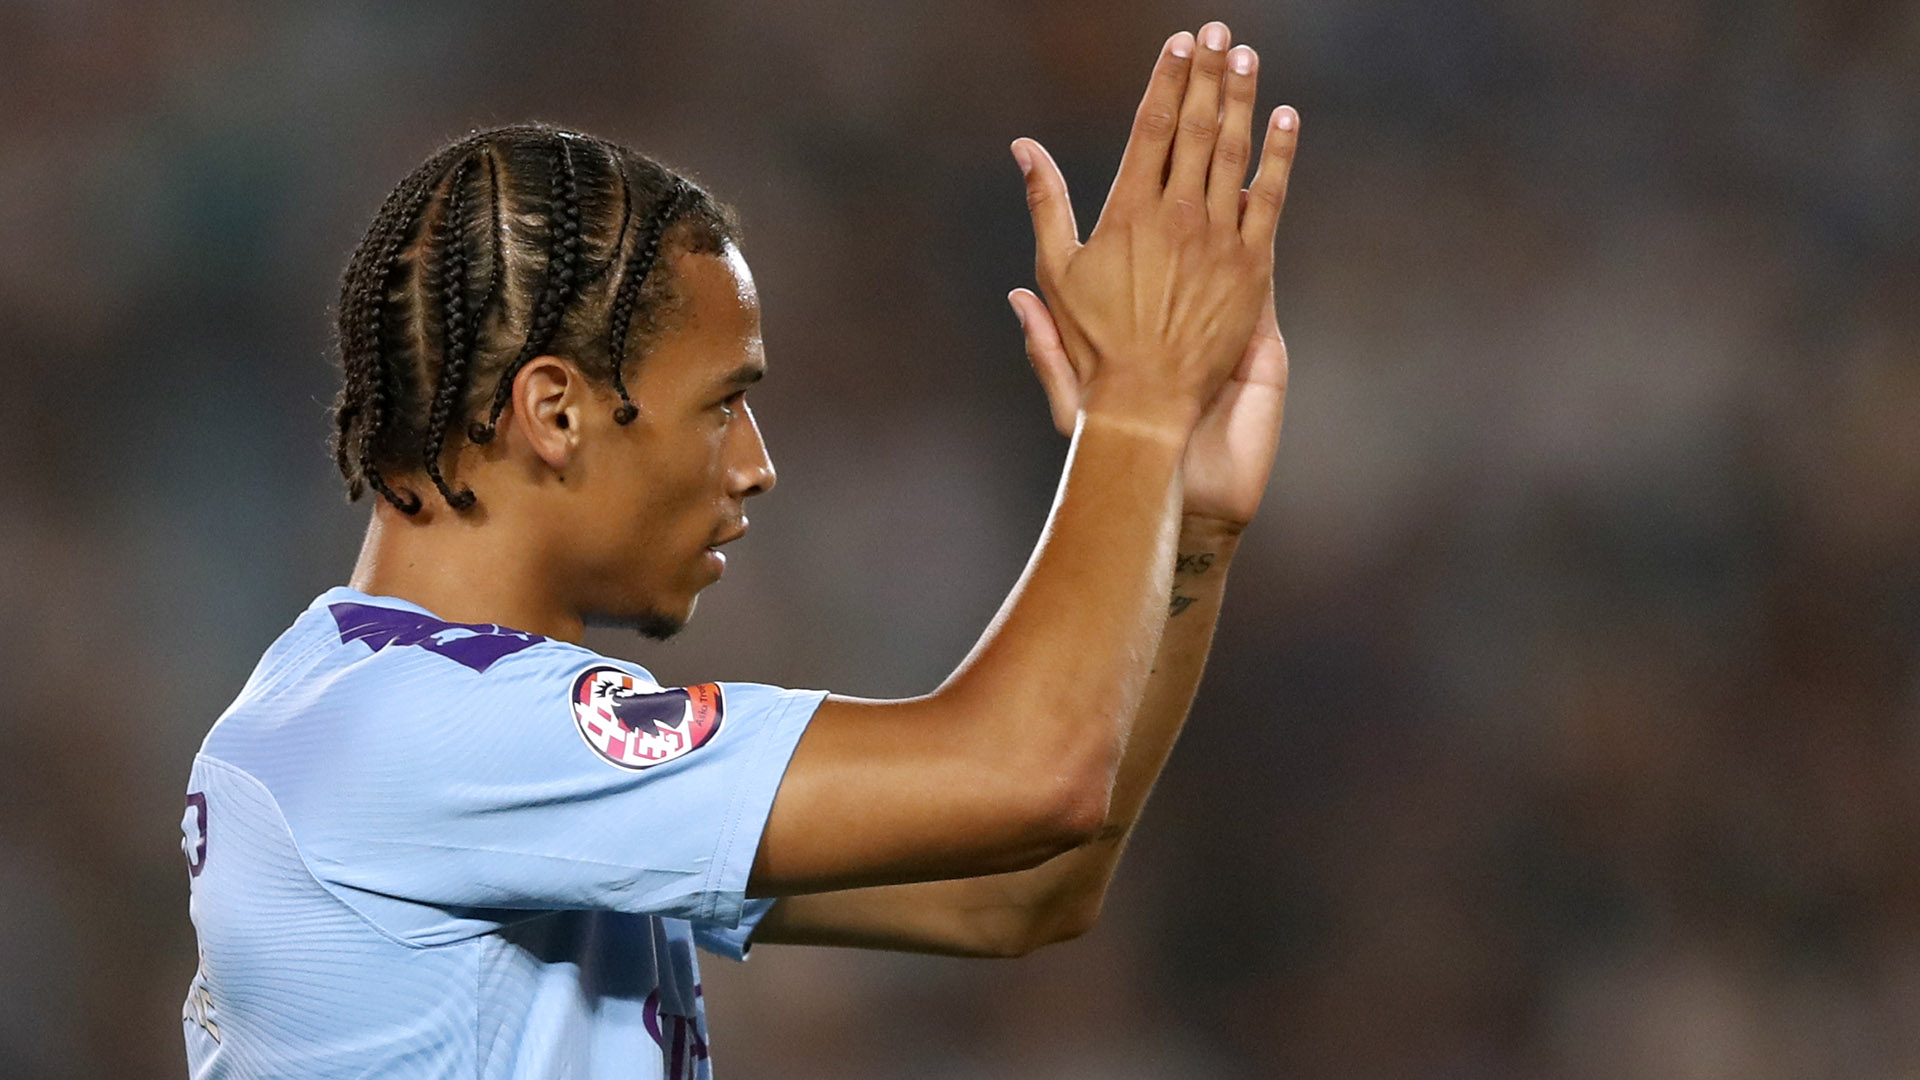 Guardiola: Sane should be back in training with Man City by next week